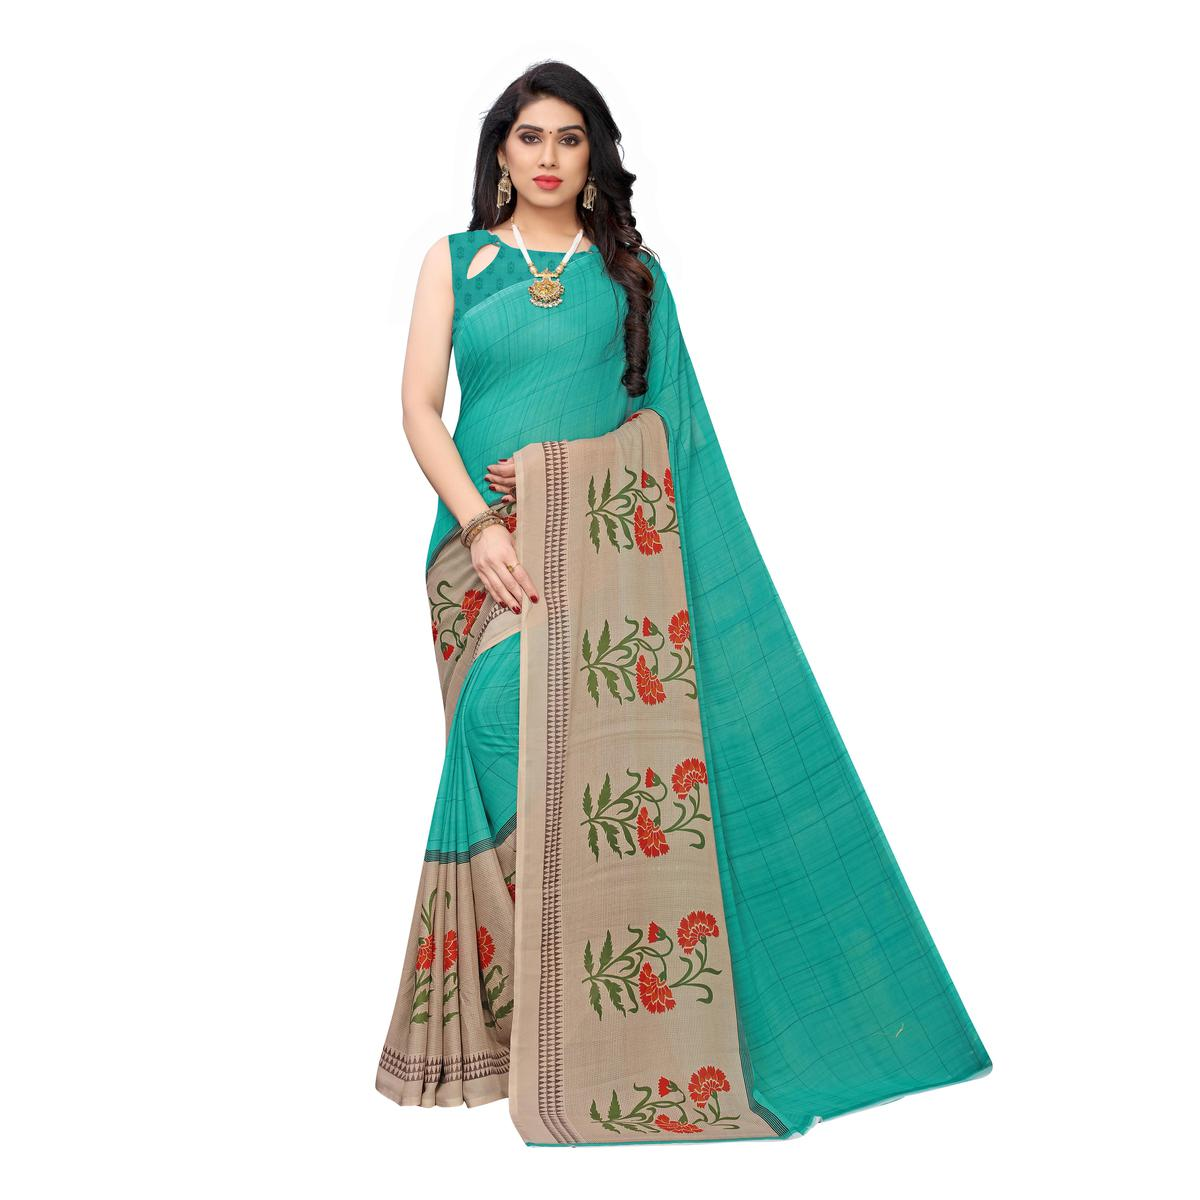 Exotic Turquoise Colored Casual Wear Stripe Printed Georgette Saree